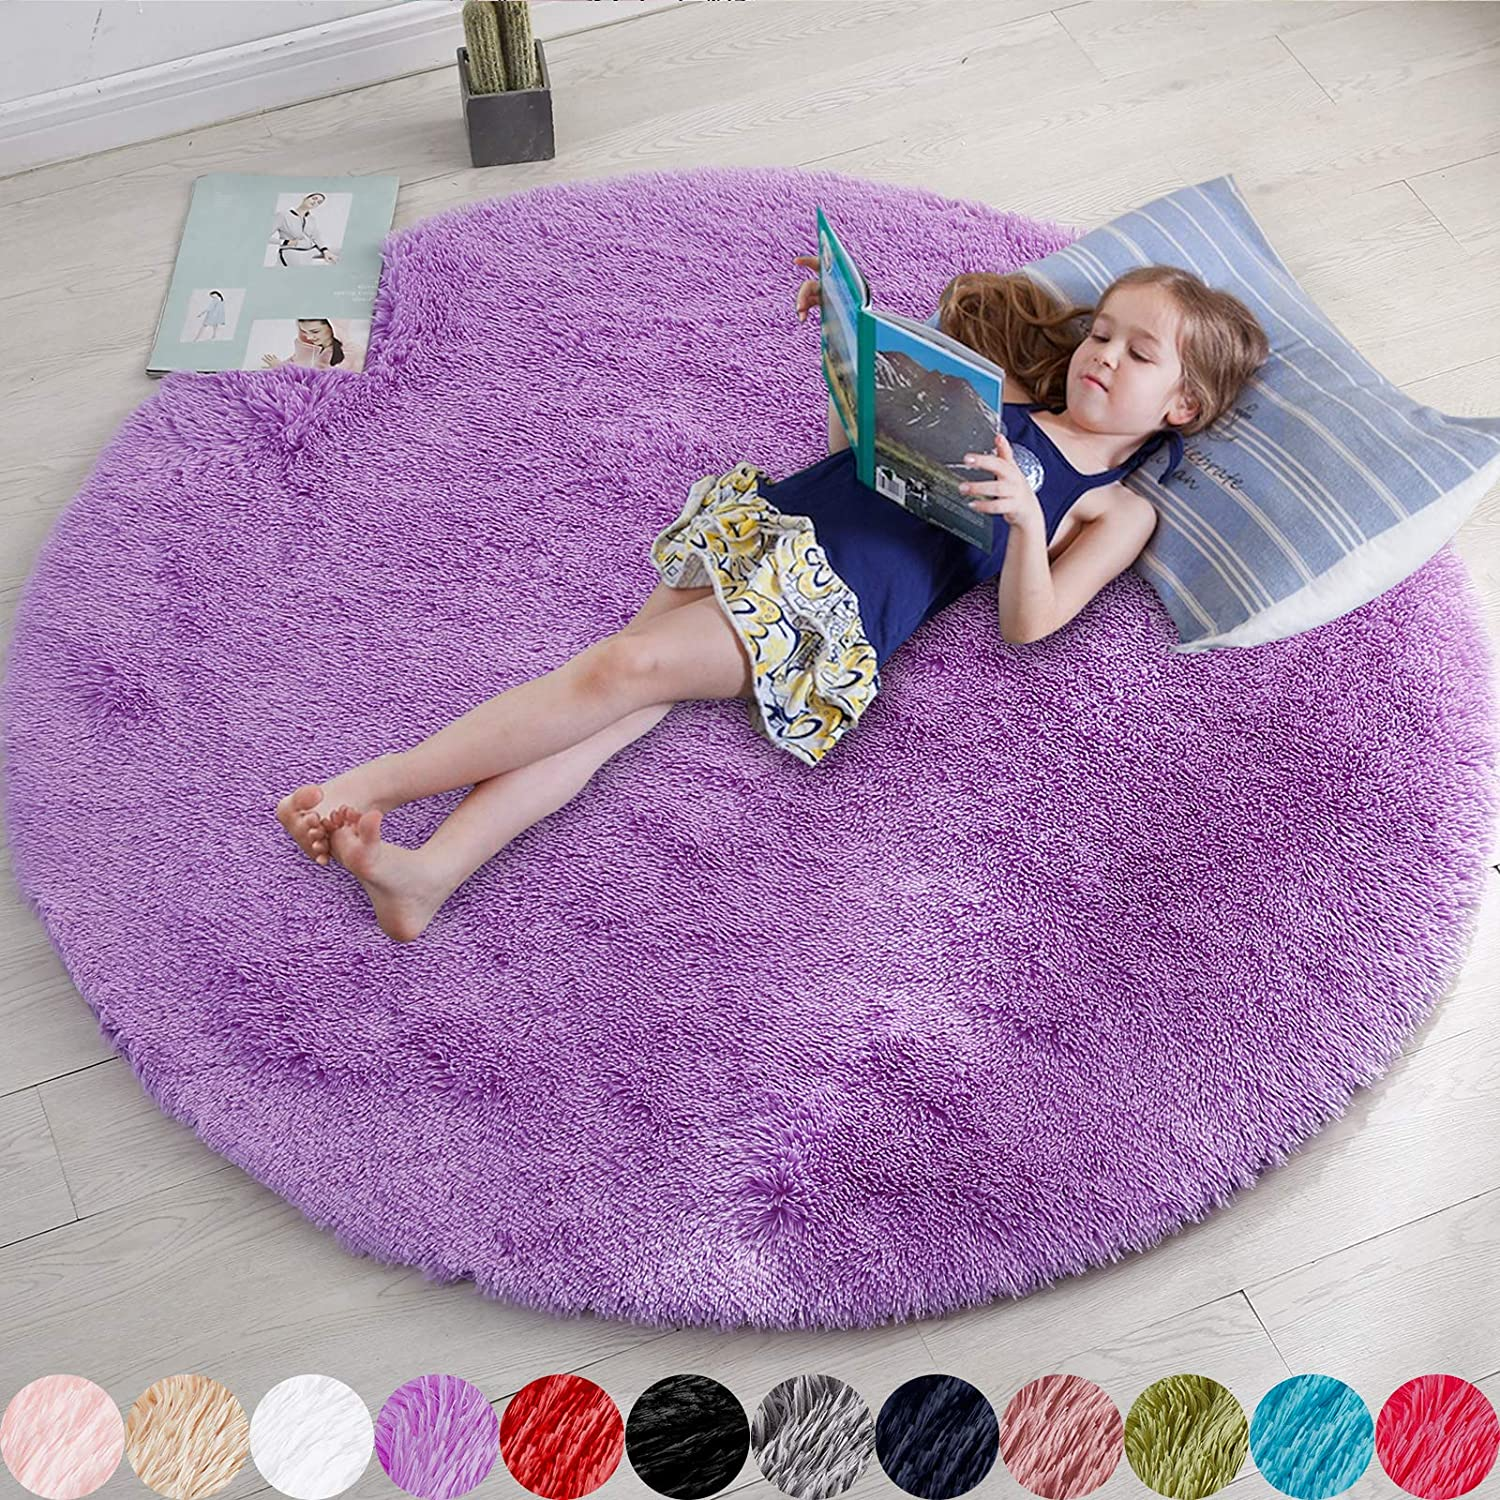 Purple Round Rug for Bedroom,Fluffy Circle Rug 4'X4' for Kids Room,Furry Carpet for Teen's Room,Shaggy Circular Rug for Nursery Room,Fuzzy Plush Rug for Dorm,Purple Carpet,Cute Room Decor for Baby